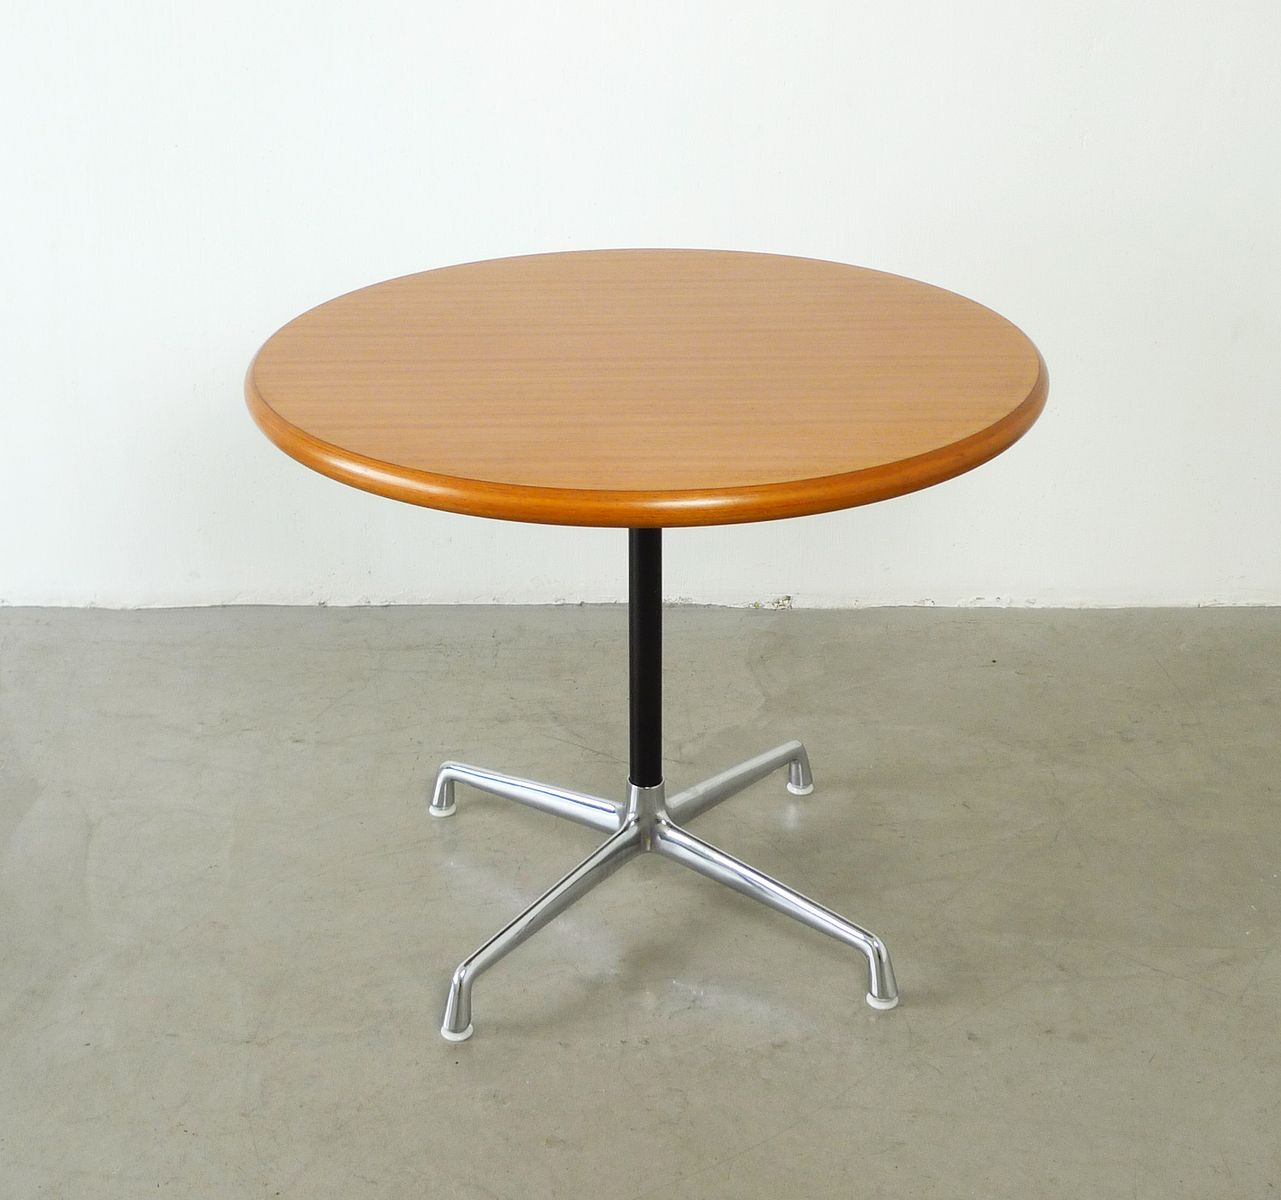 Contract table by charles ray eames for herman miller for Table ronde charles eames